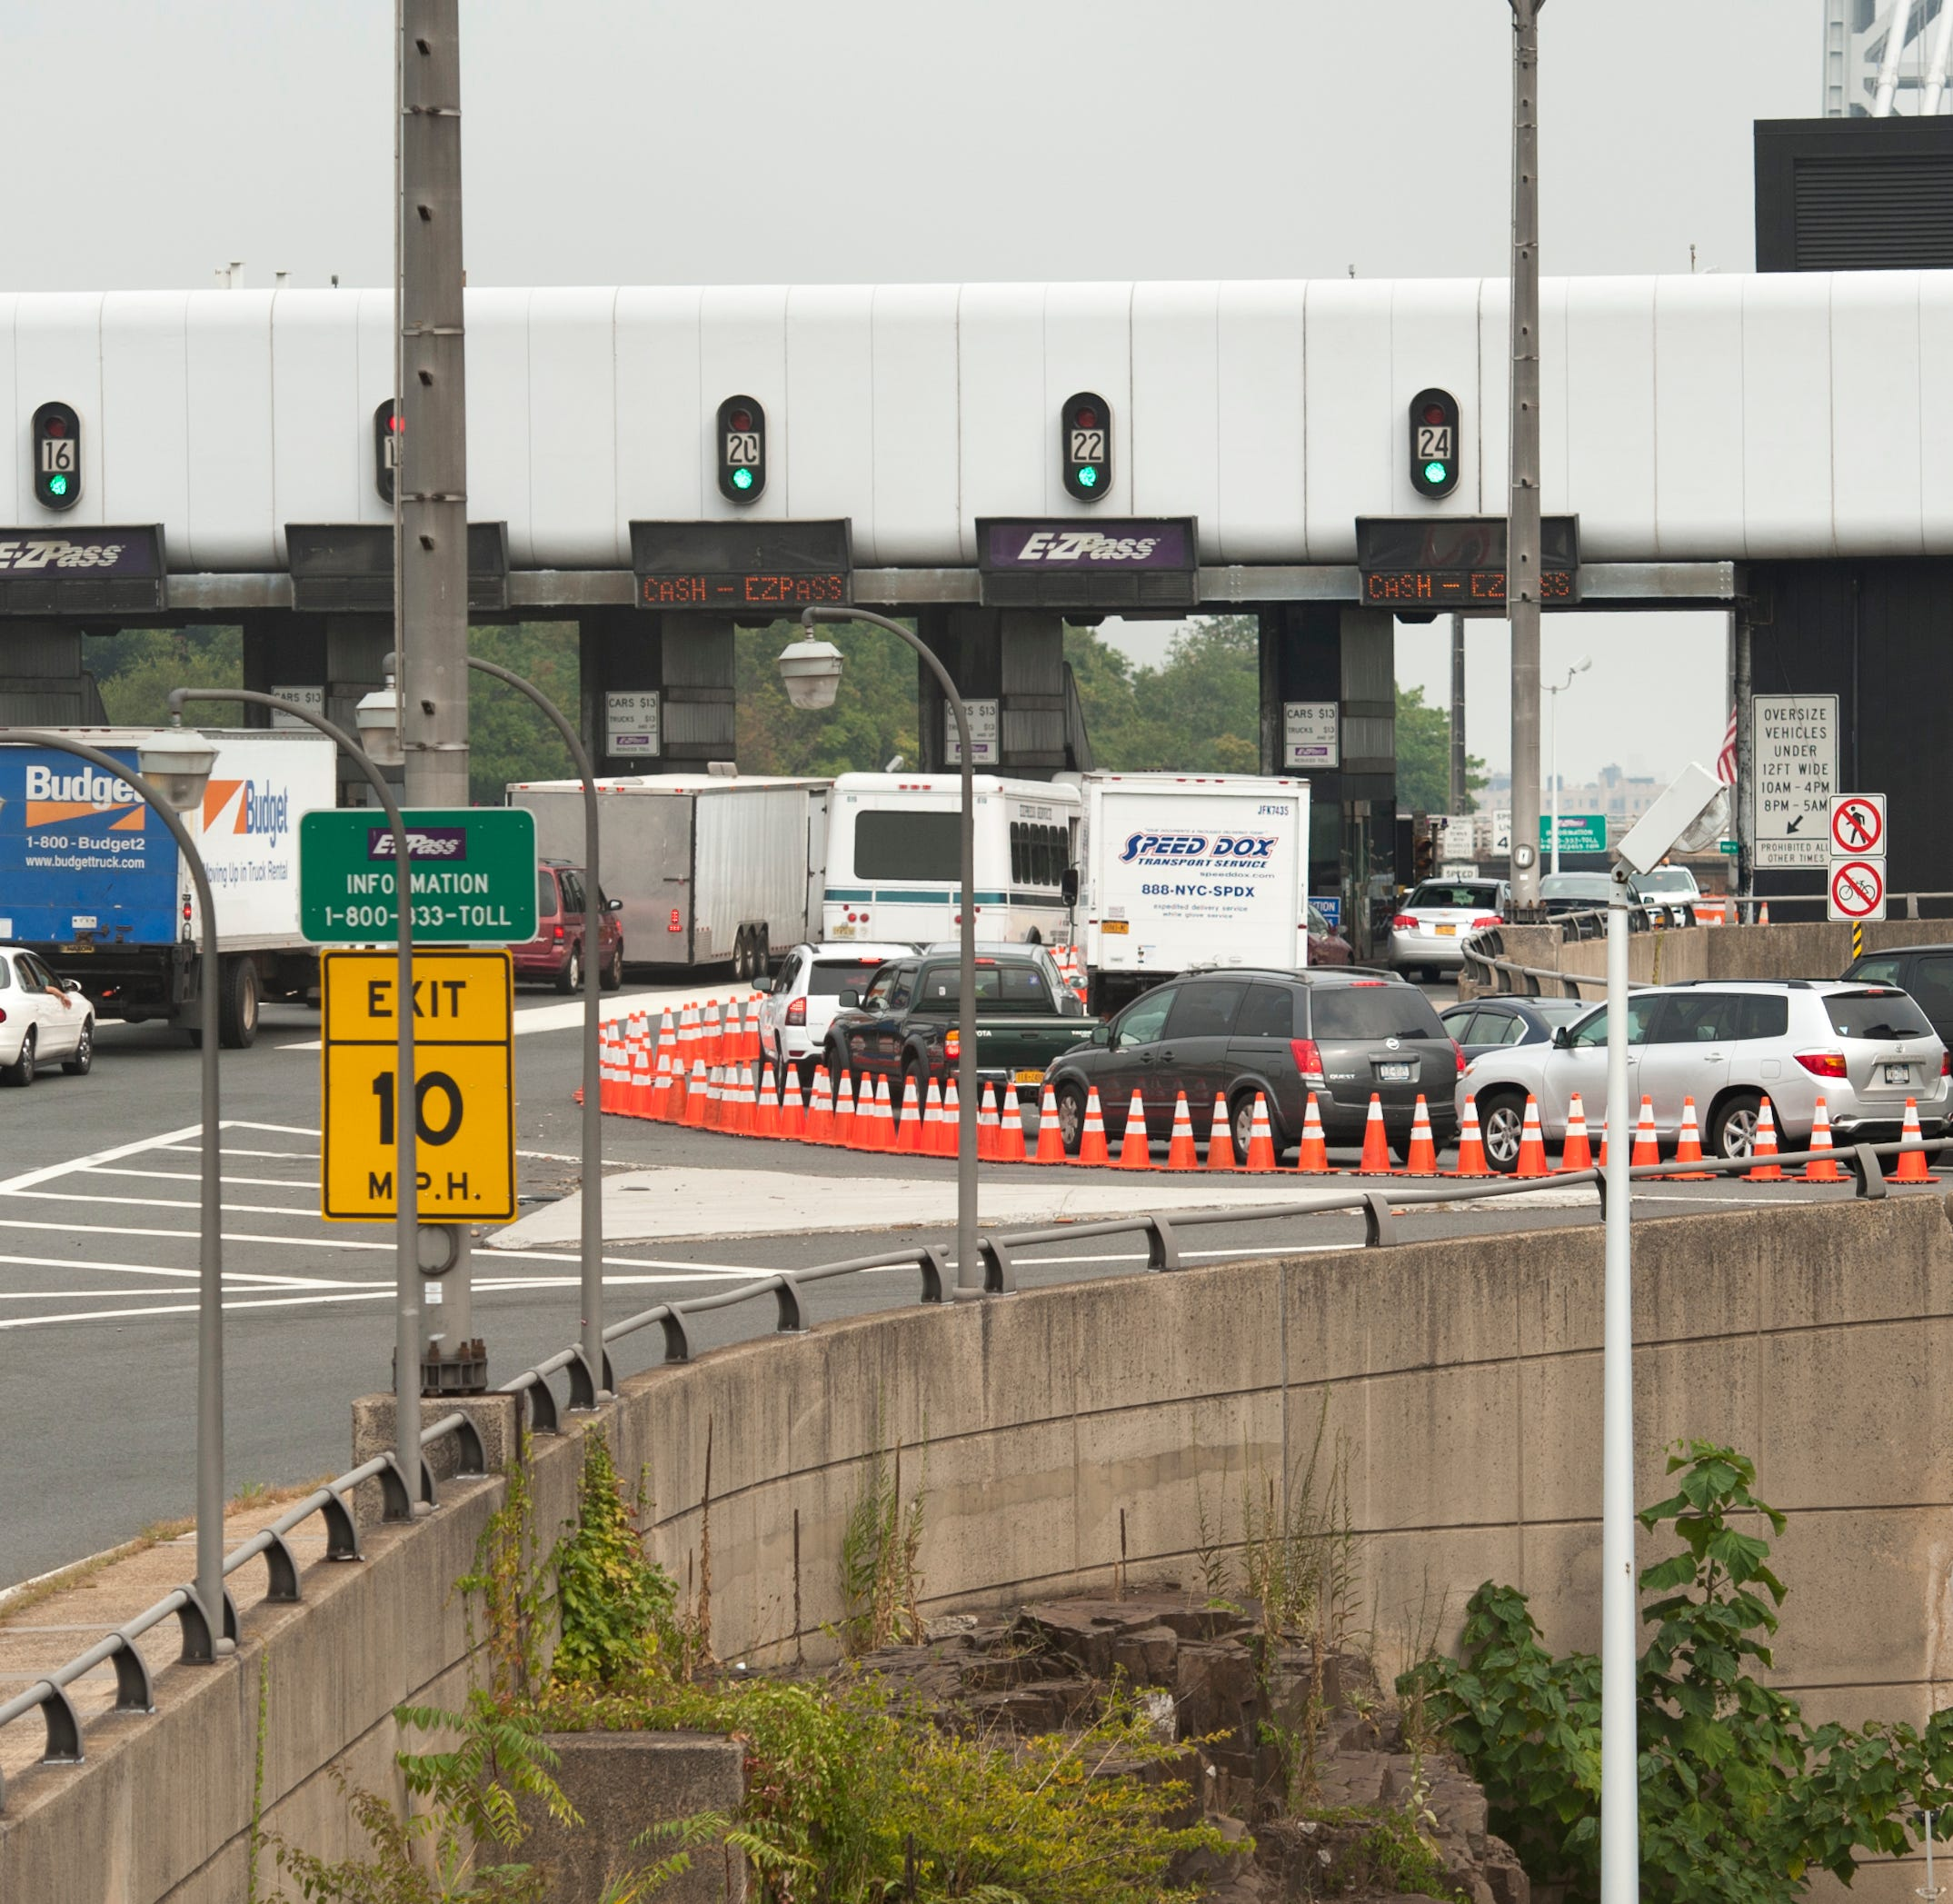 Port Authority says 'abusive decision' to close lanes put public in danger: Archive